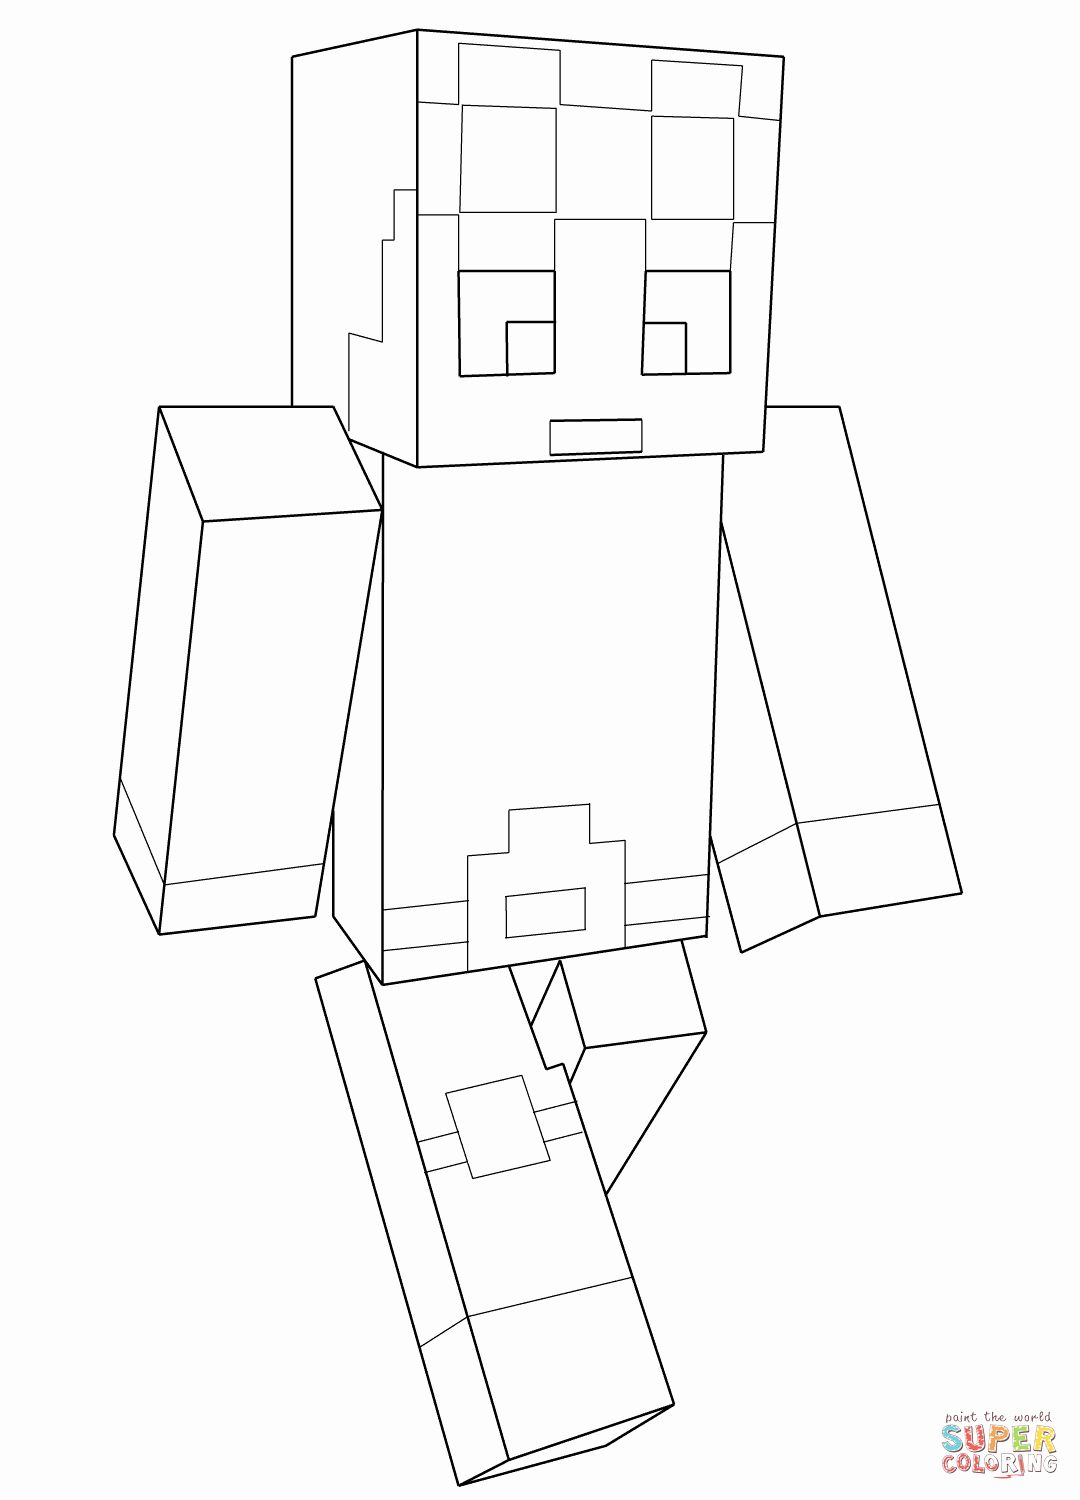 Printable Minecraft Coloring Pages New Minecraft Dantdm Coloring Page In 2020 Printable Coloring Pages Minecraft Coloring Pages Lego Coloring Pages